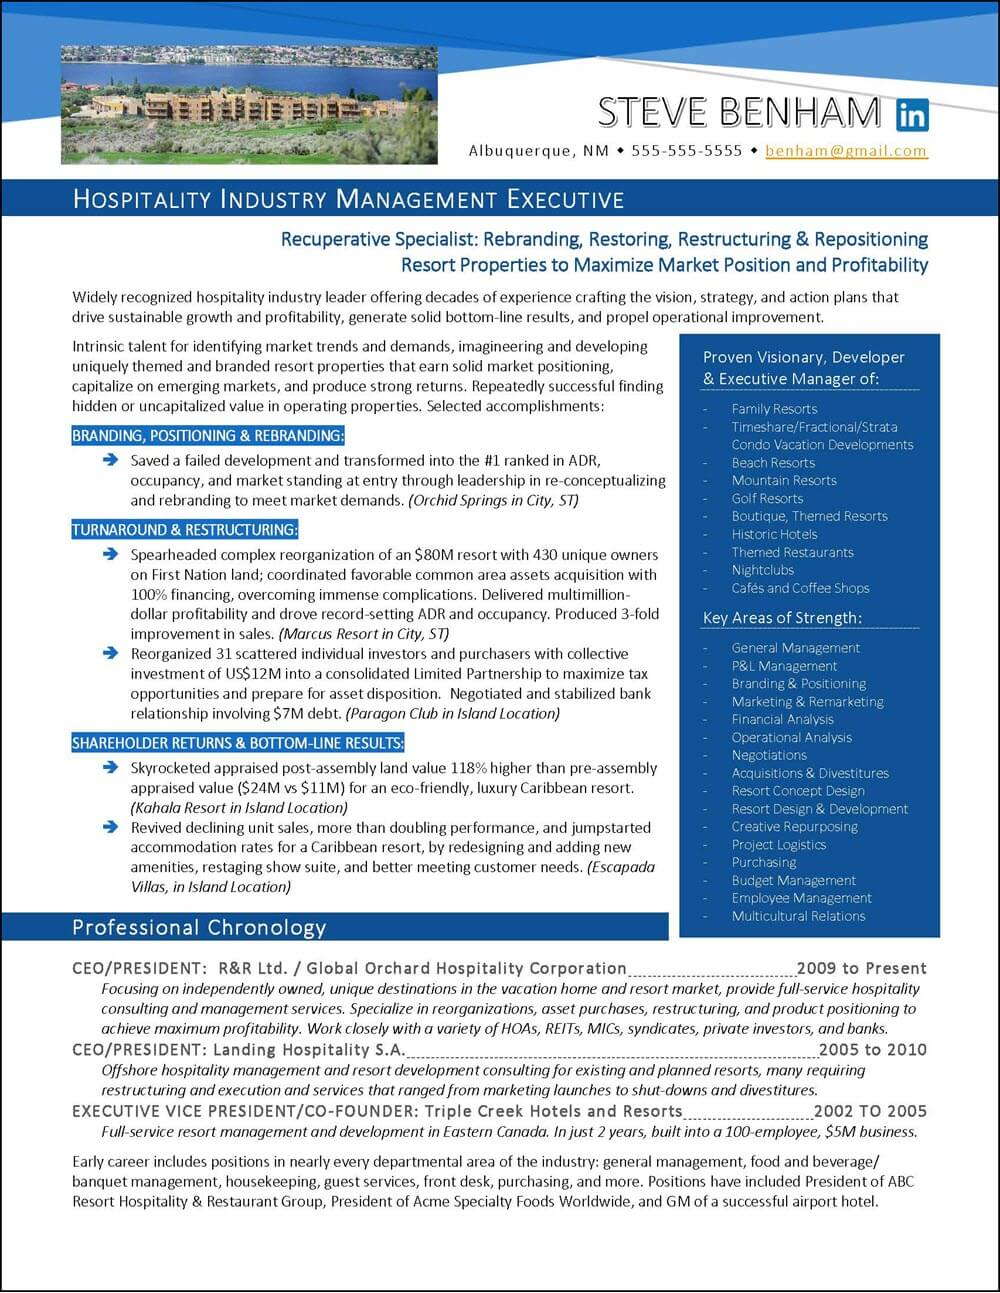 Example Hospitality Industry Executive Resume - page 1